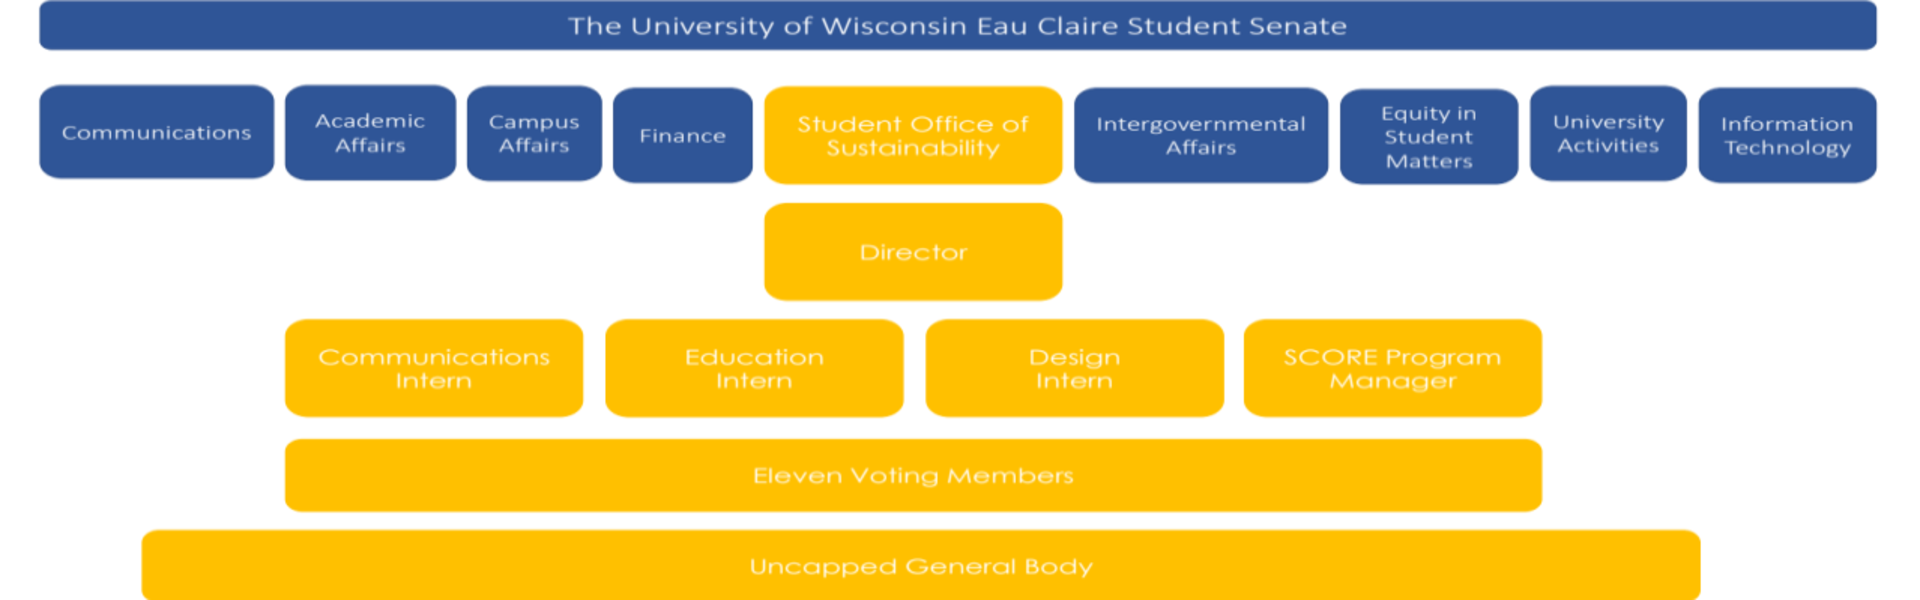 Student Office of Sustainability Structure